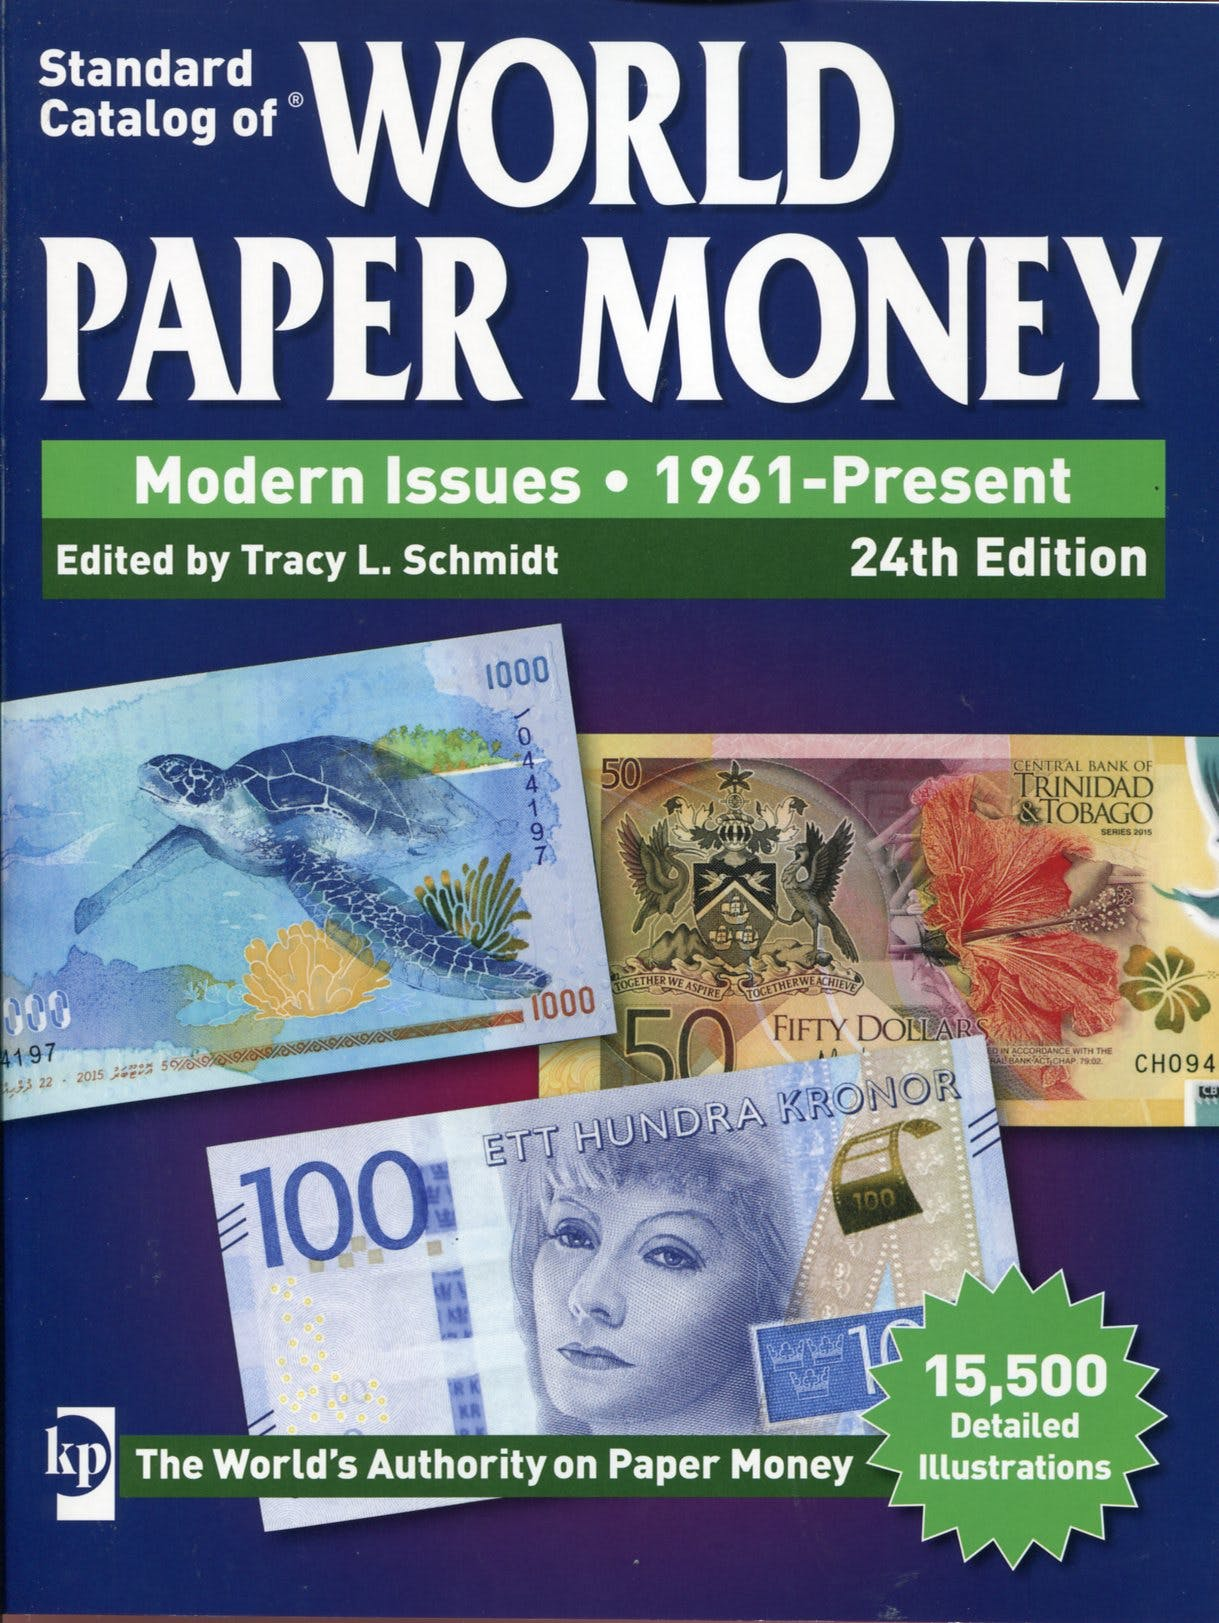 World Paper Money Volume III Modern Issues 24th edition in the Token Publishing Shop